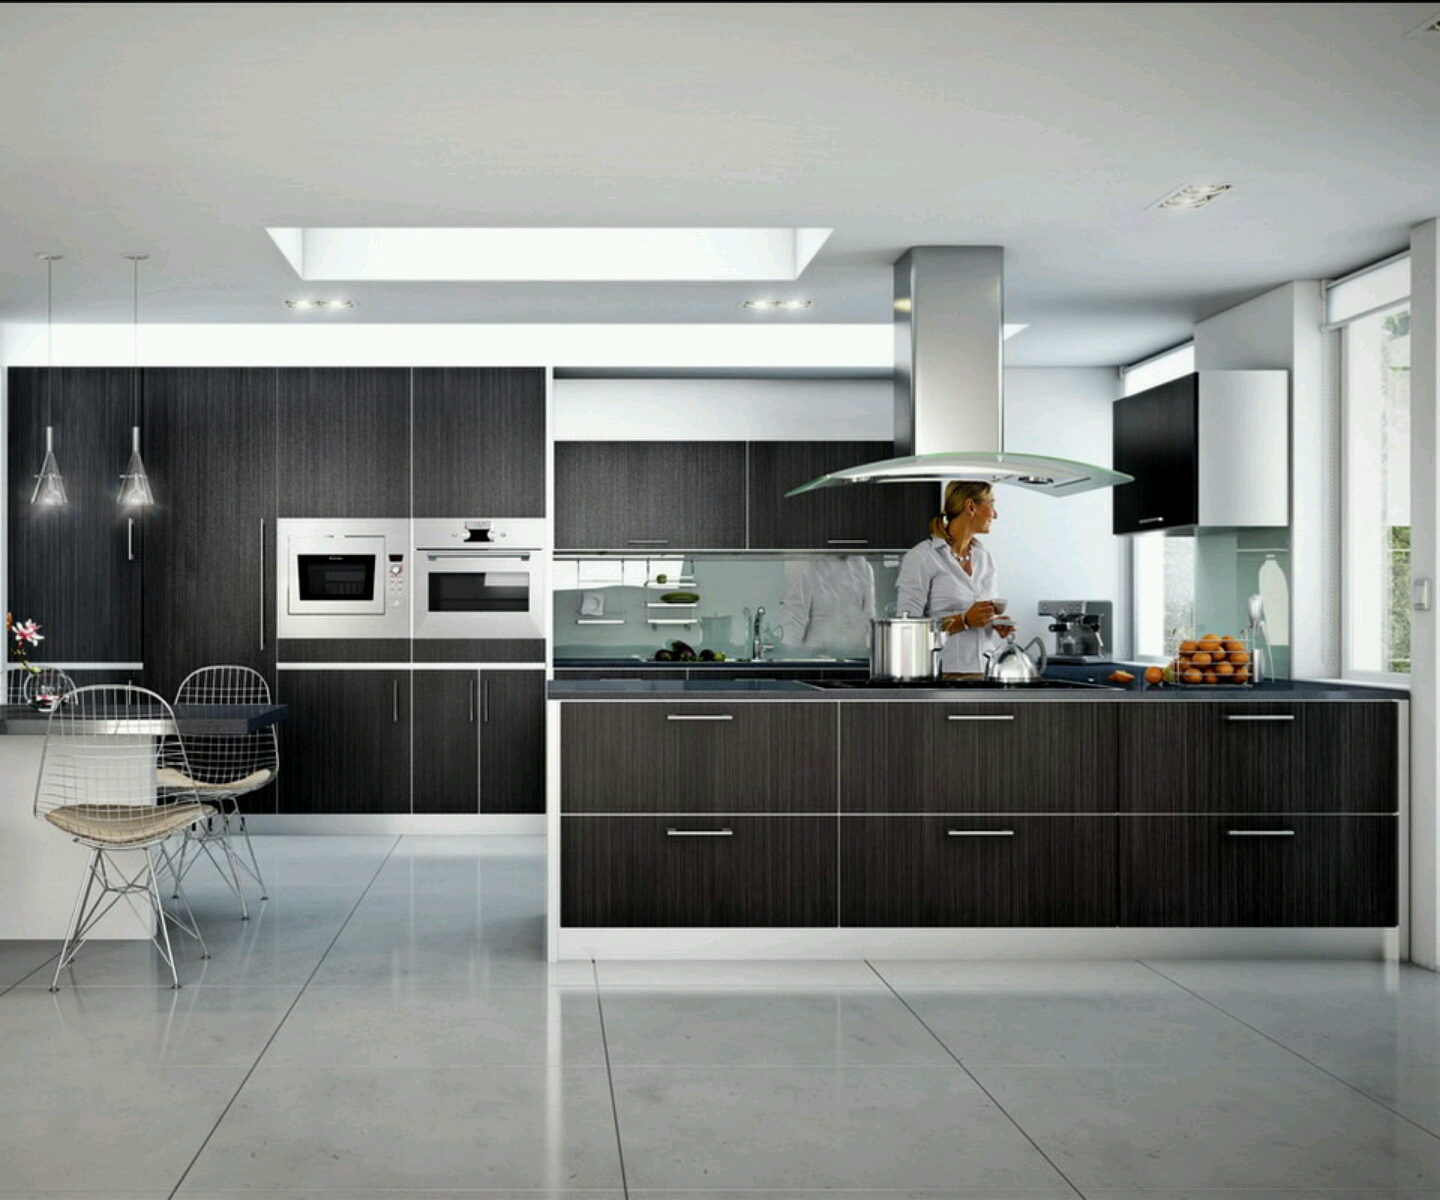 Attirant Modern Homes Ultra Modern Kitchen Designs Ideas.